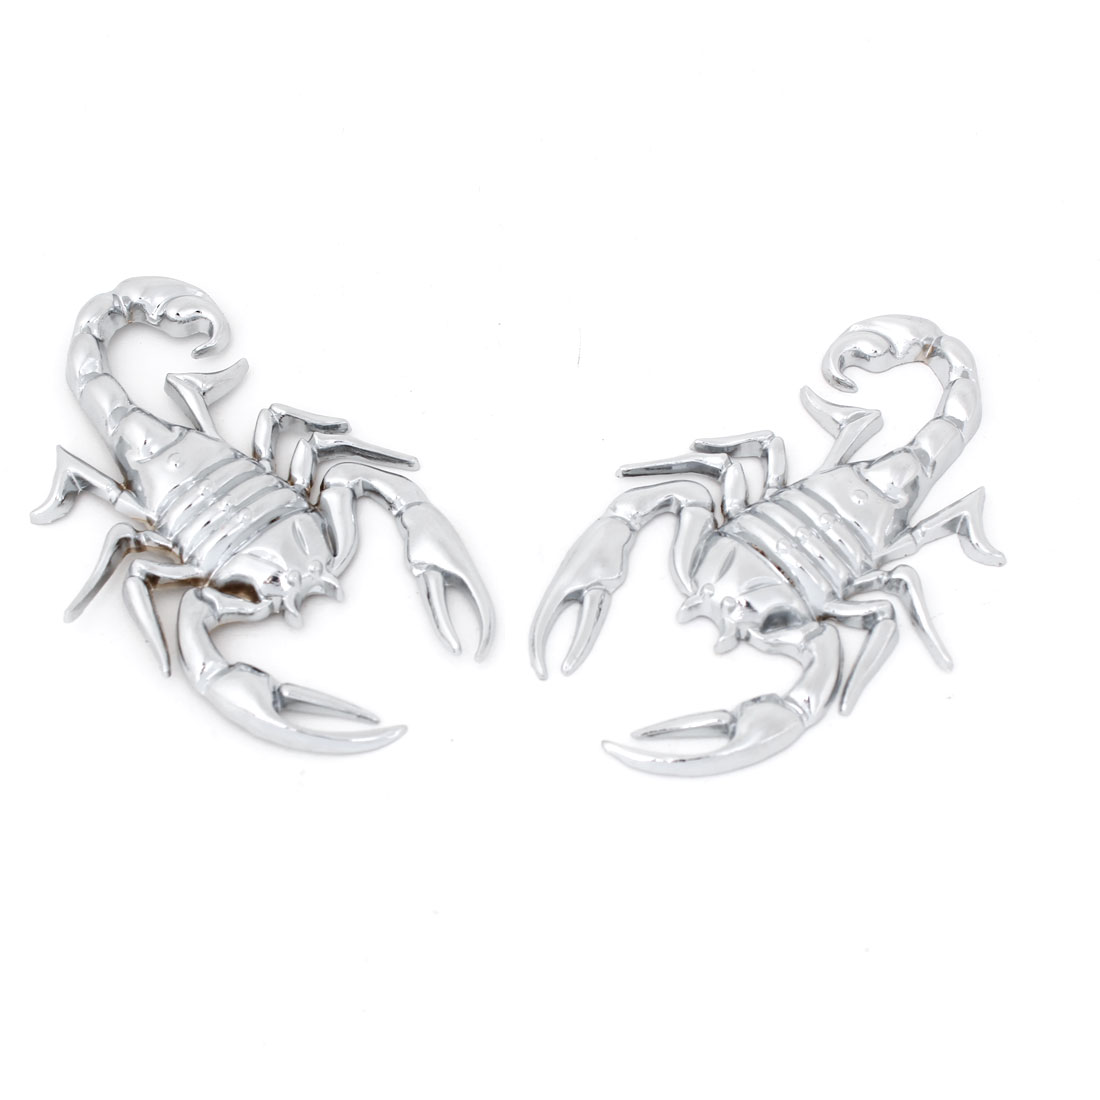 2 Pcs Silver Tone Metal 3D Scorpion Shape Sticker Decal Badge for Car